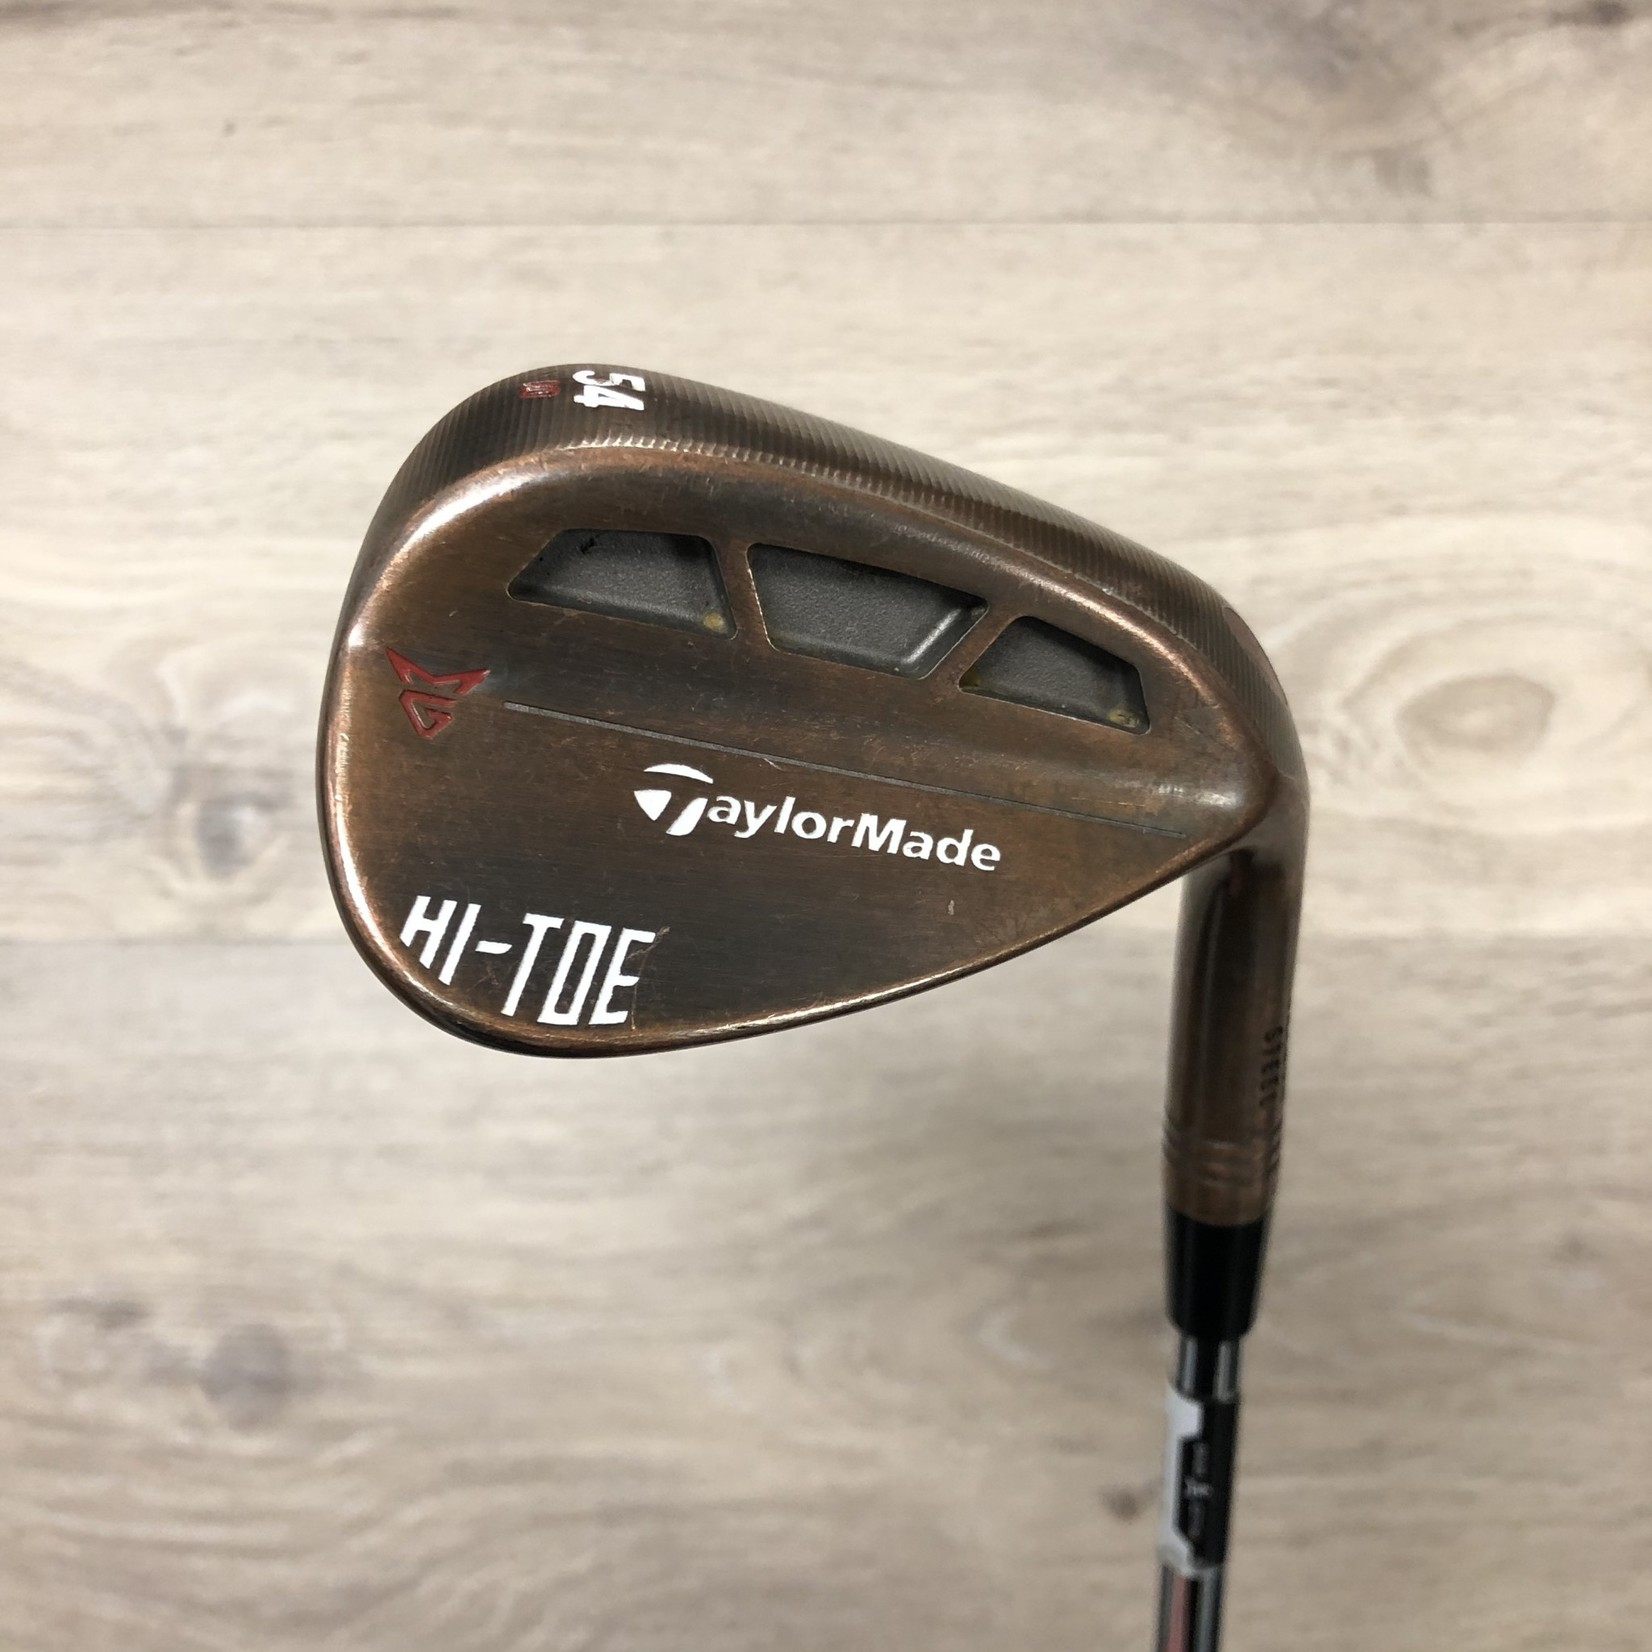 TaylorMade Taylormade Milled Grind Hi-Toe Wedge 54* 10* (RH)